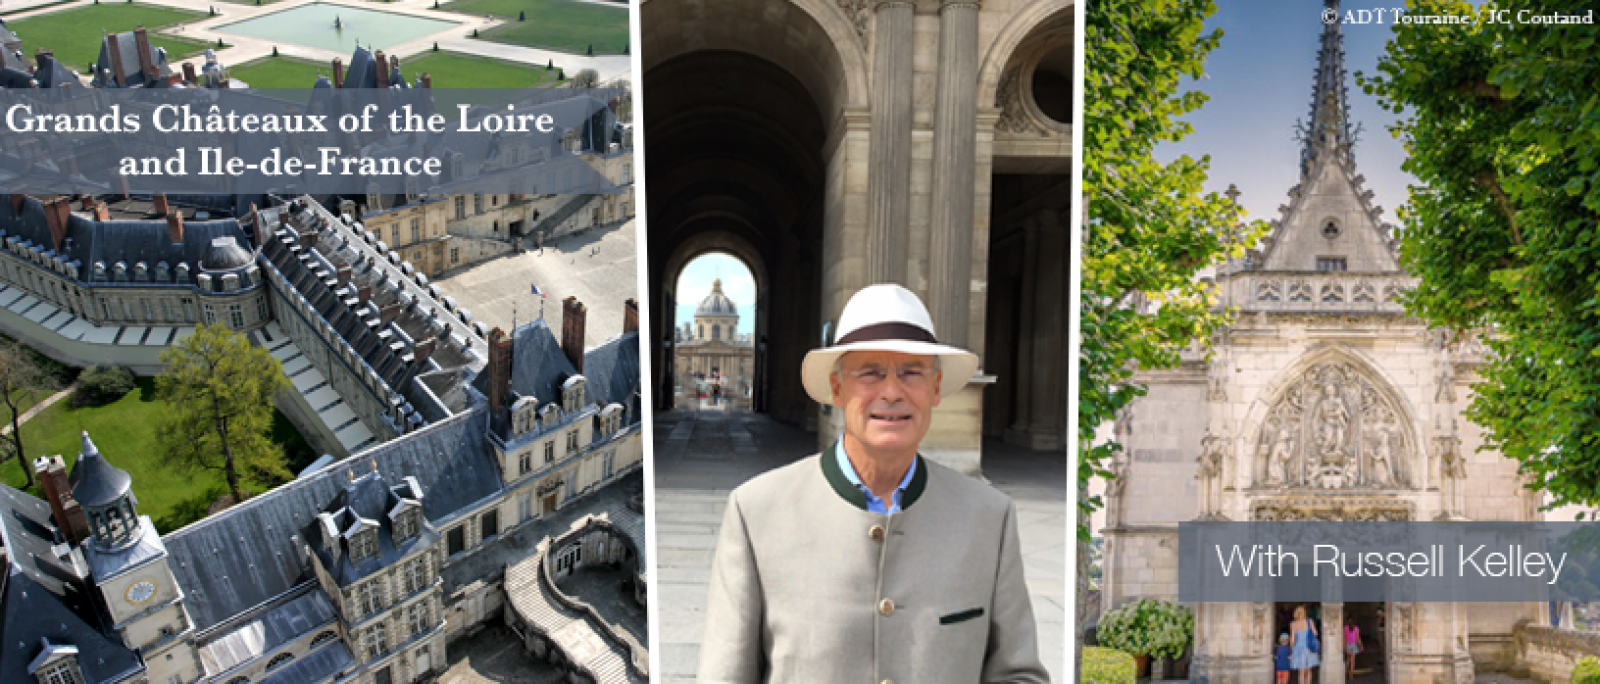 Introduction: Grands Châteaux of the Loire and Ile-de-France